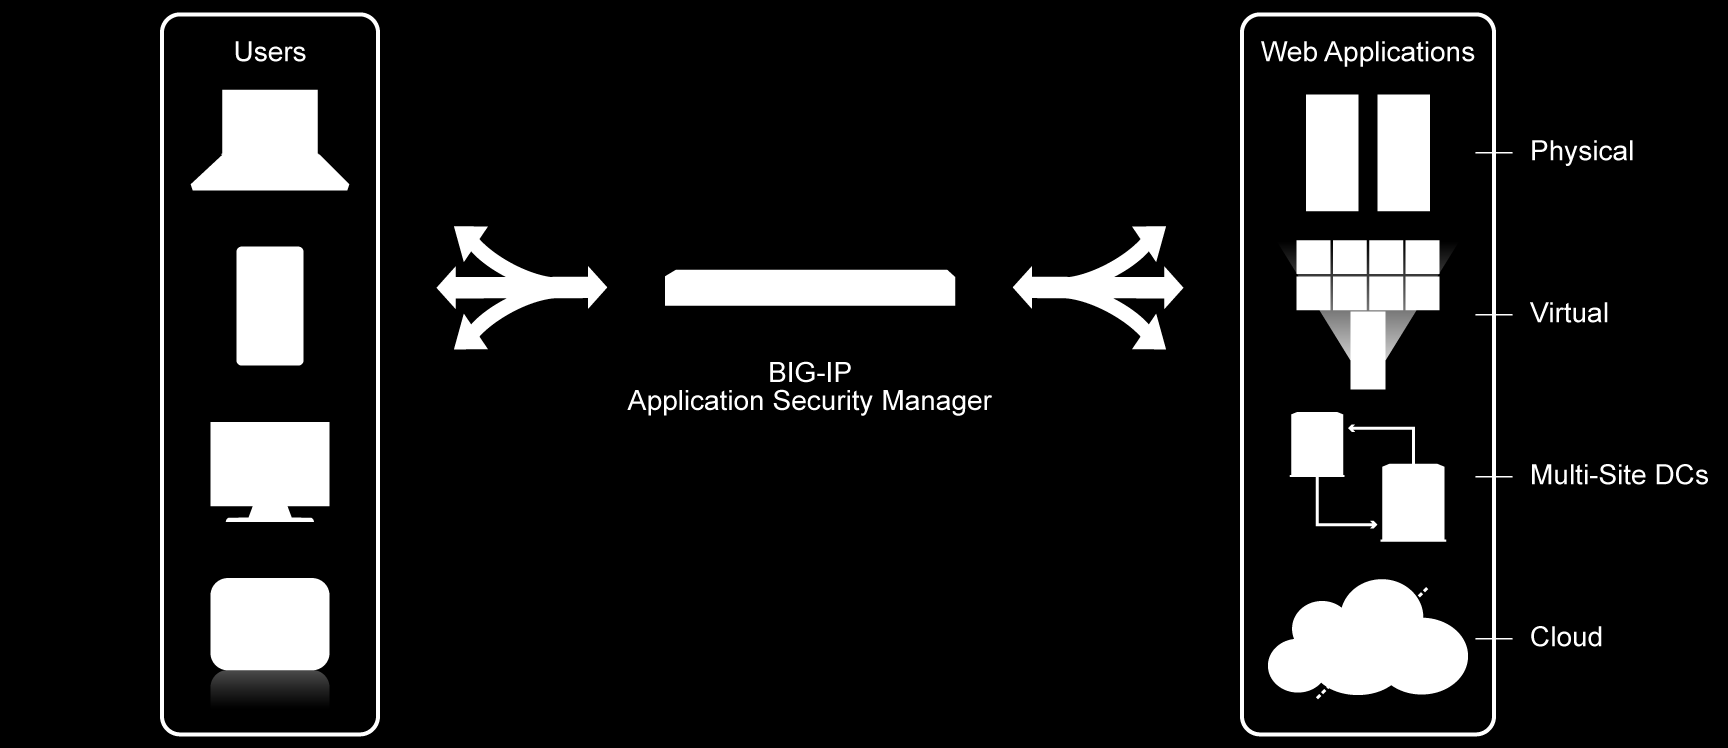 Protéger les applications Webs avec BIG-IP Application Security Manager (ASM) Sécurisation